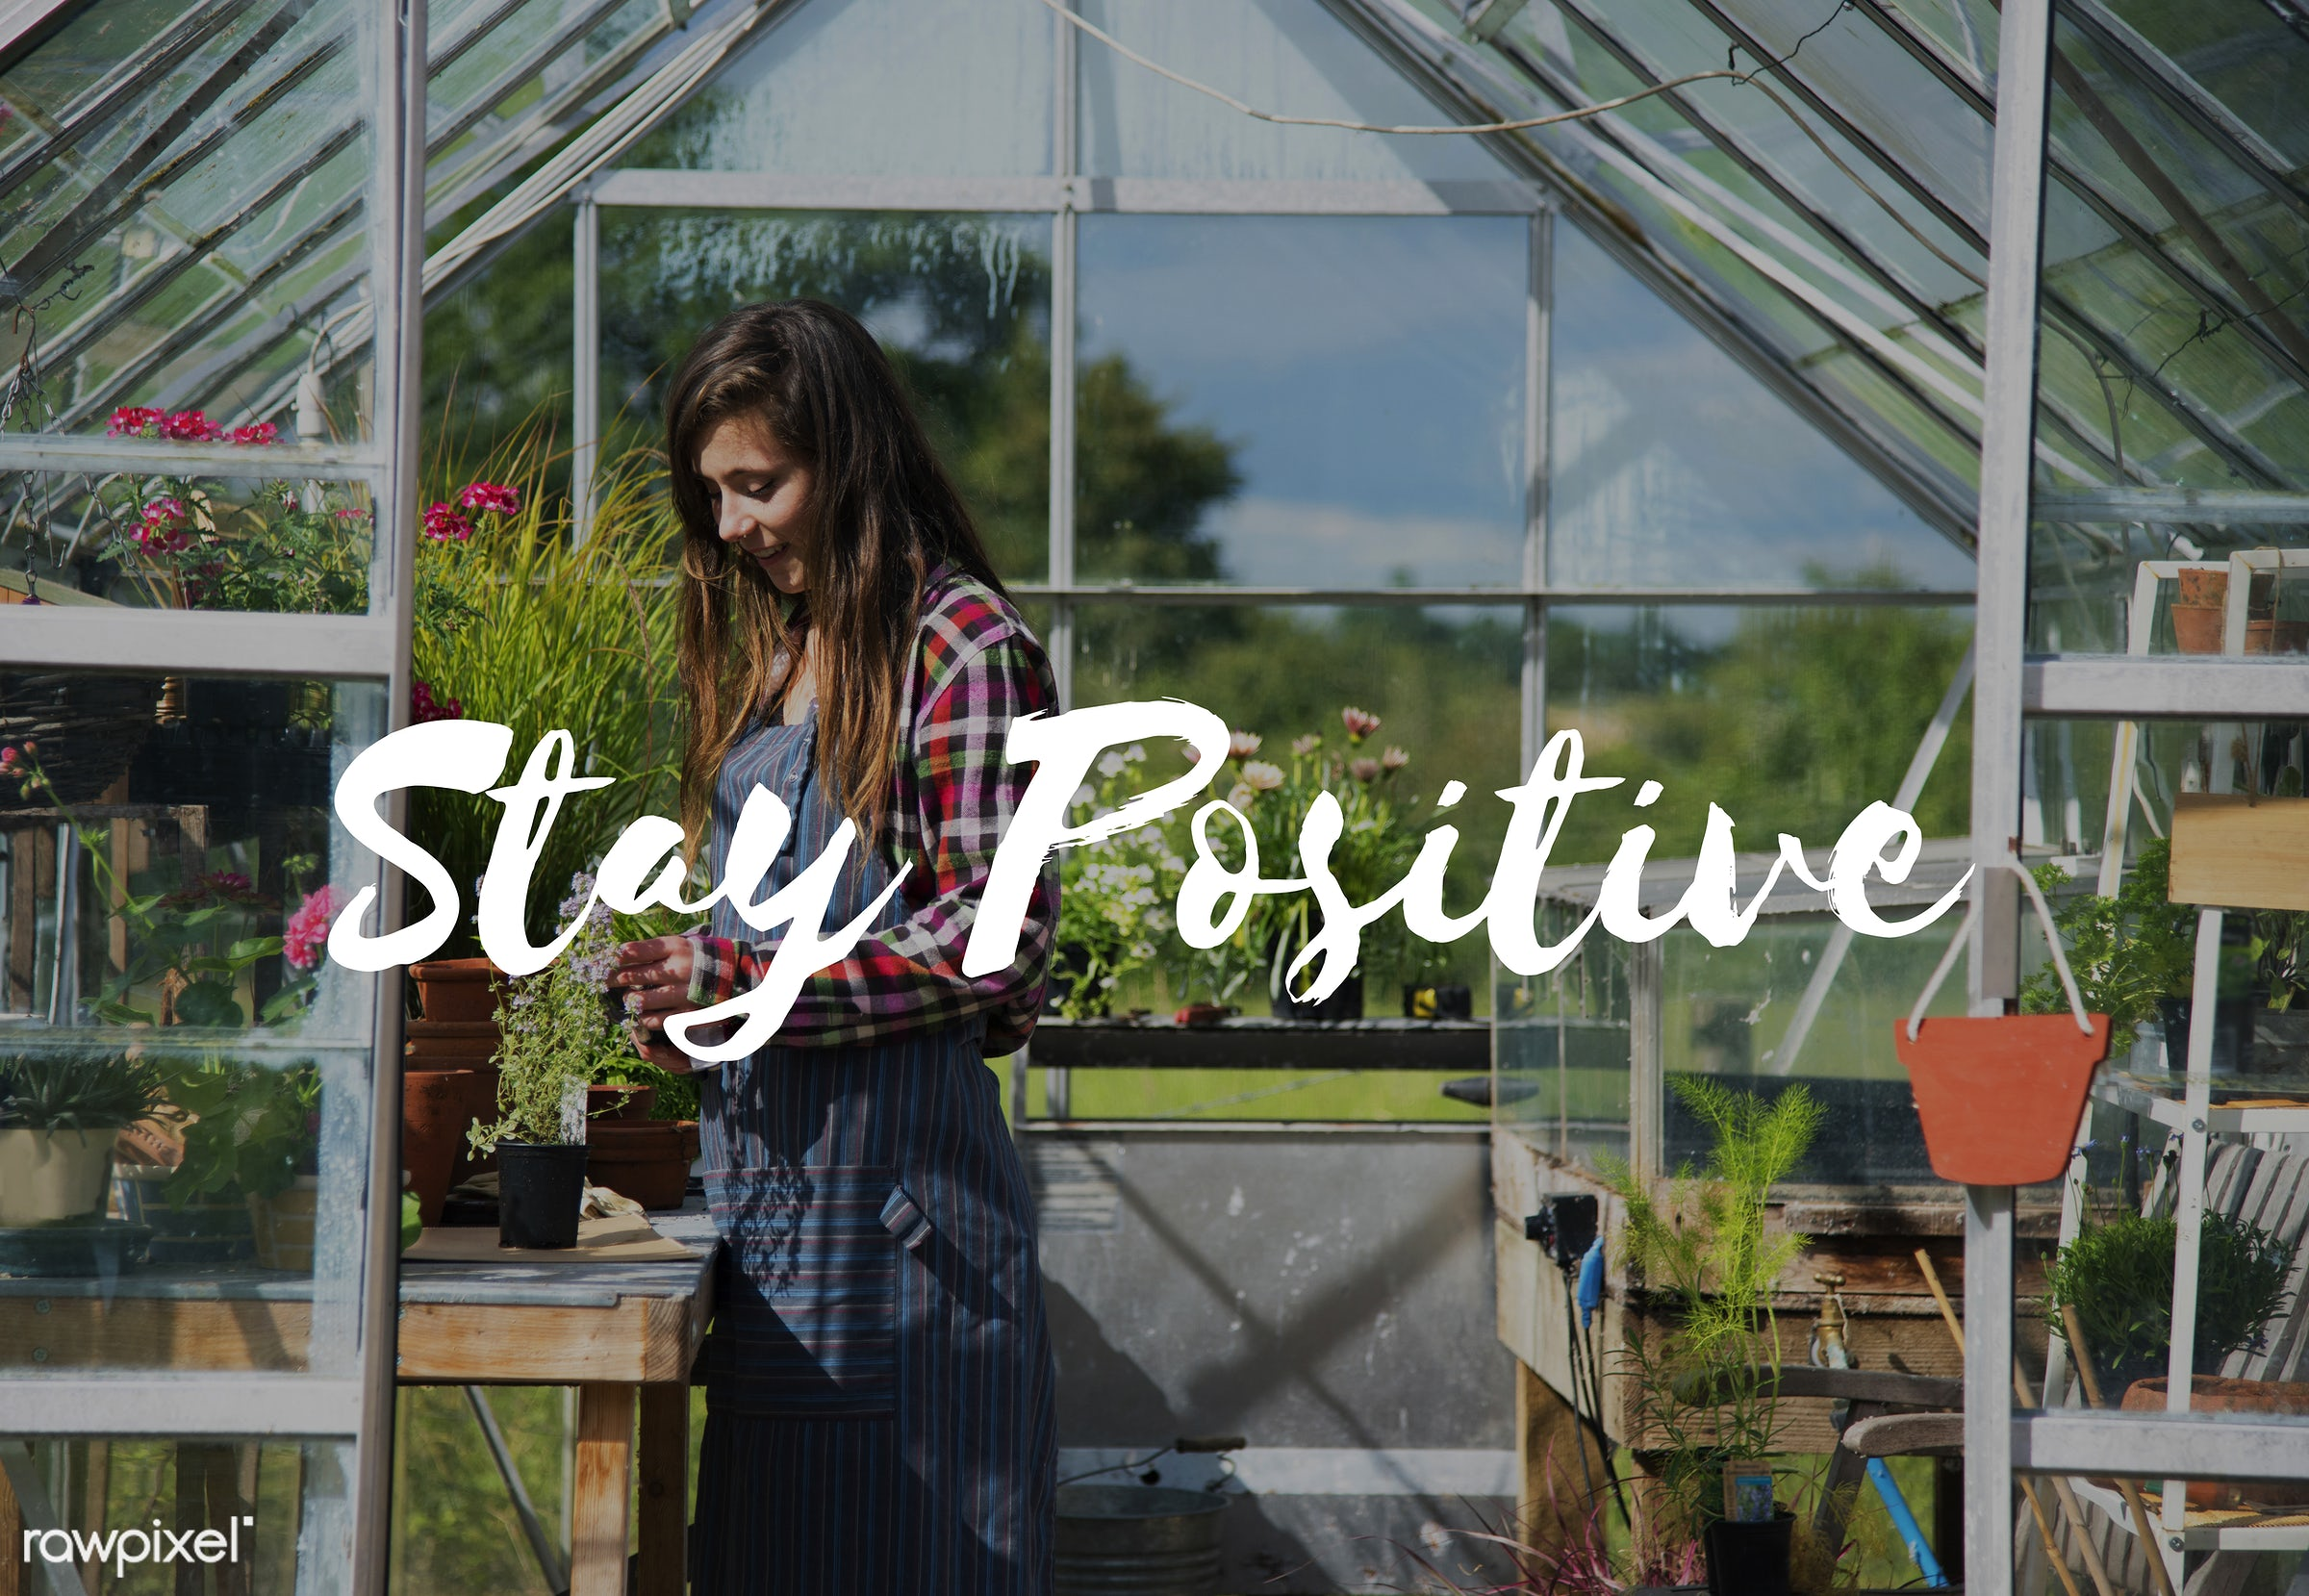 apron, be positive, better, caucasian, dark blonde, day, delightful, enjoy, enjoyment, female, flowers, garden, gardener,...